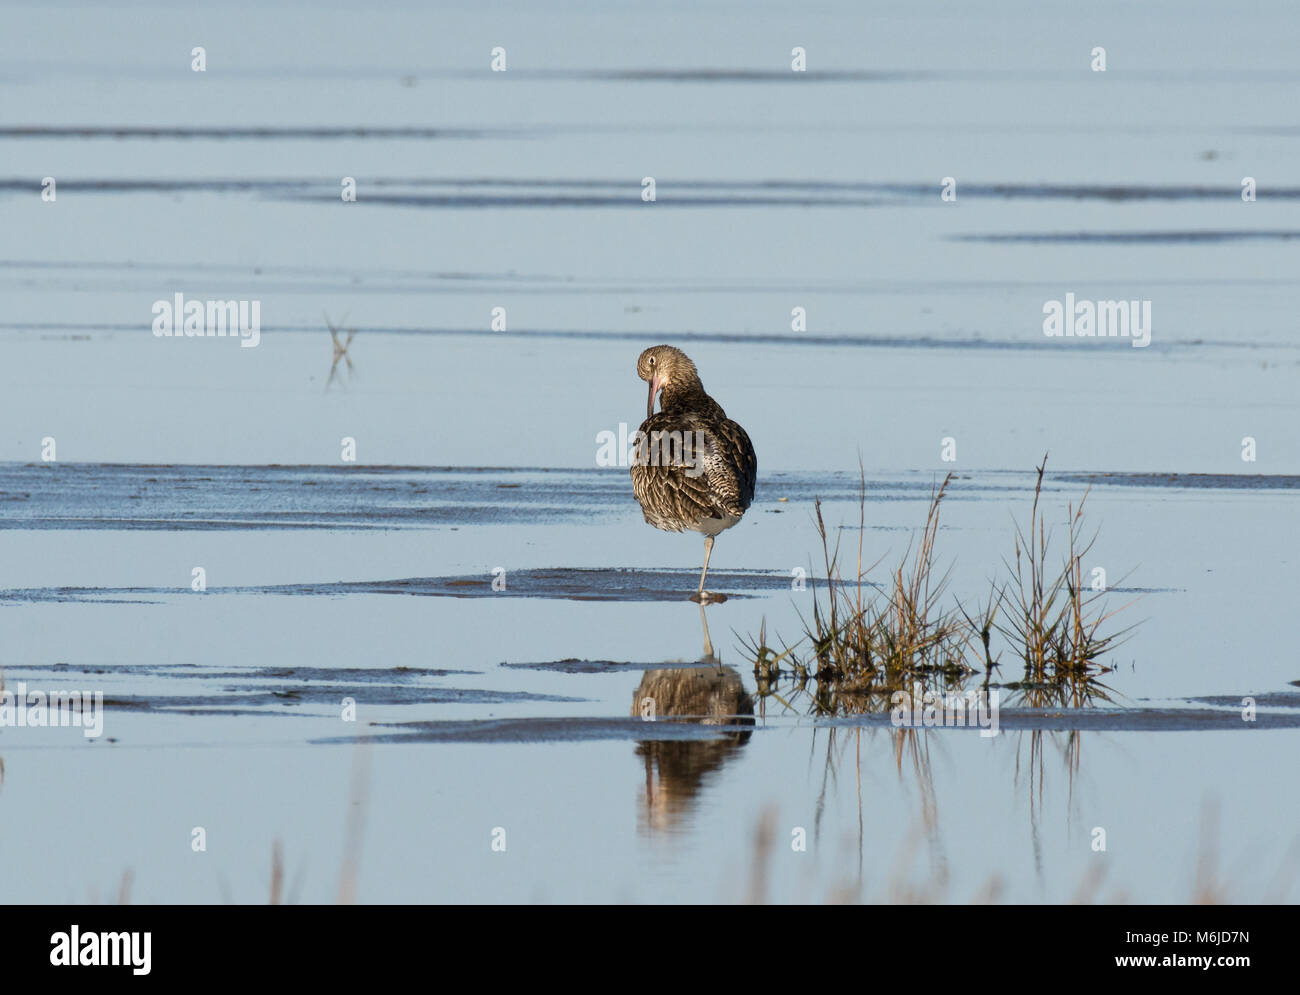 Curlew, Numenius arquata, preening in salt marsh, Morecambe Bay, Lancashire, UK Stock Photo